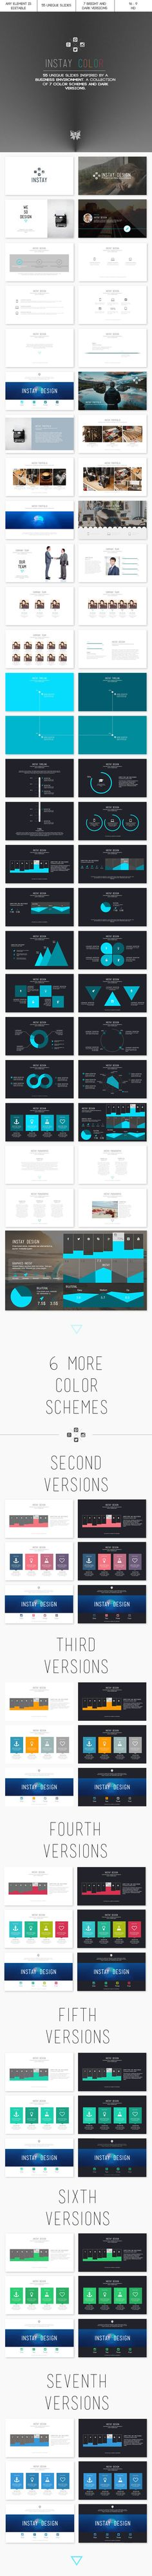 Instay Color 2.0 - PowerPoint Template